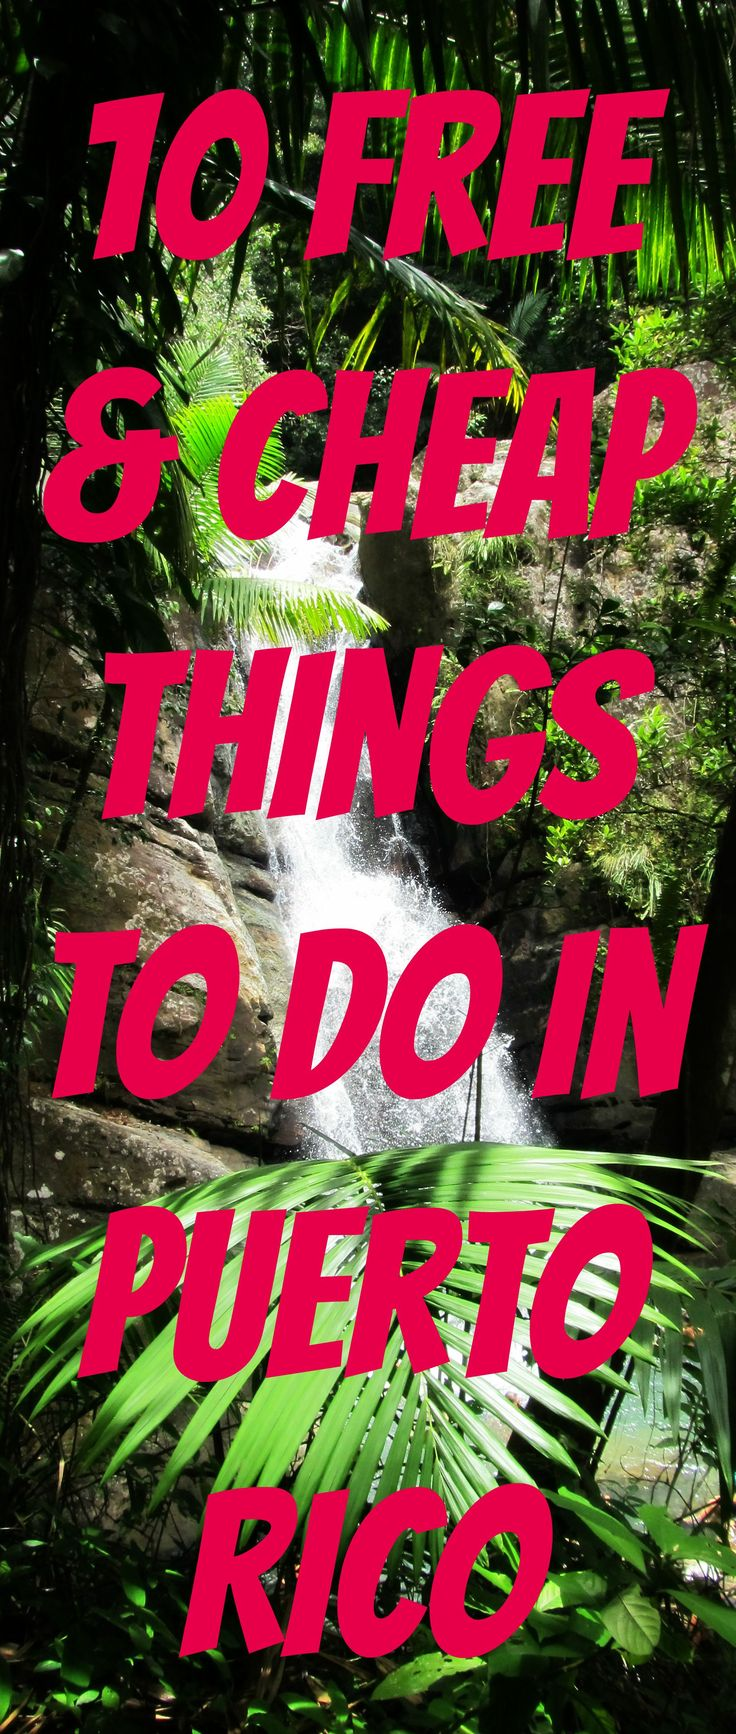 10 Free & Cheap Things to Do in Puerto Rico                                                                                                                                                                                 More